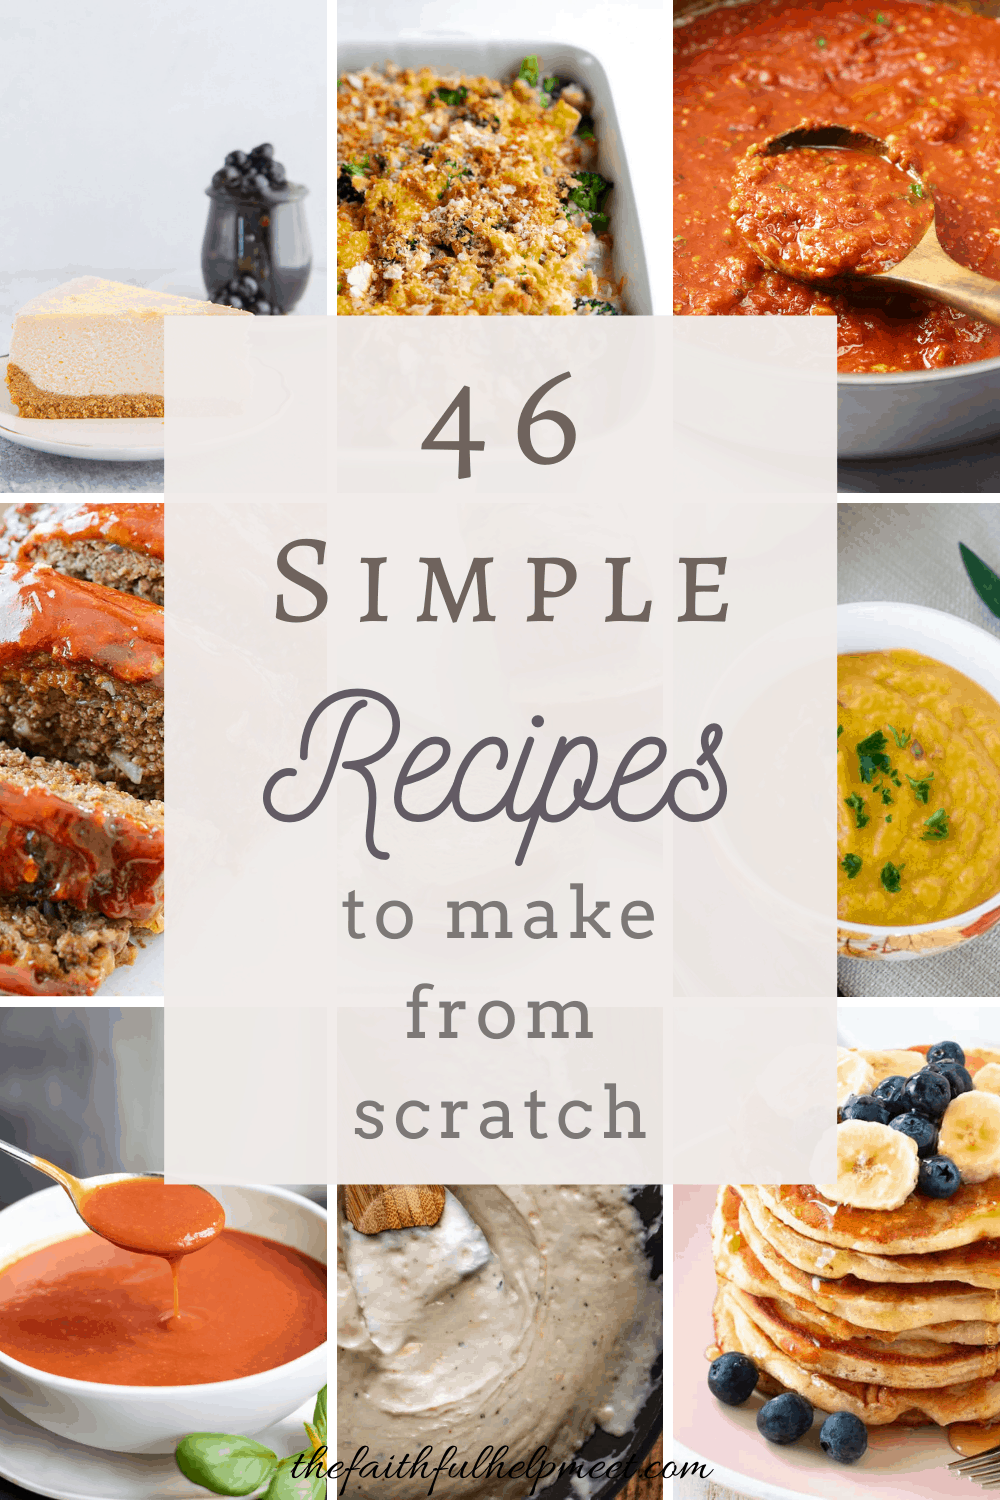 46 Simple Recipes to make from scratch